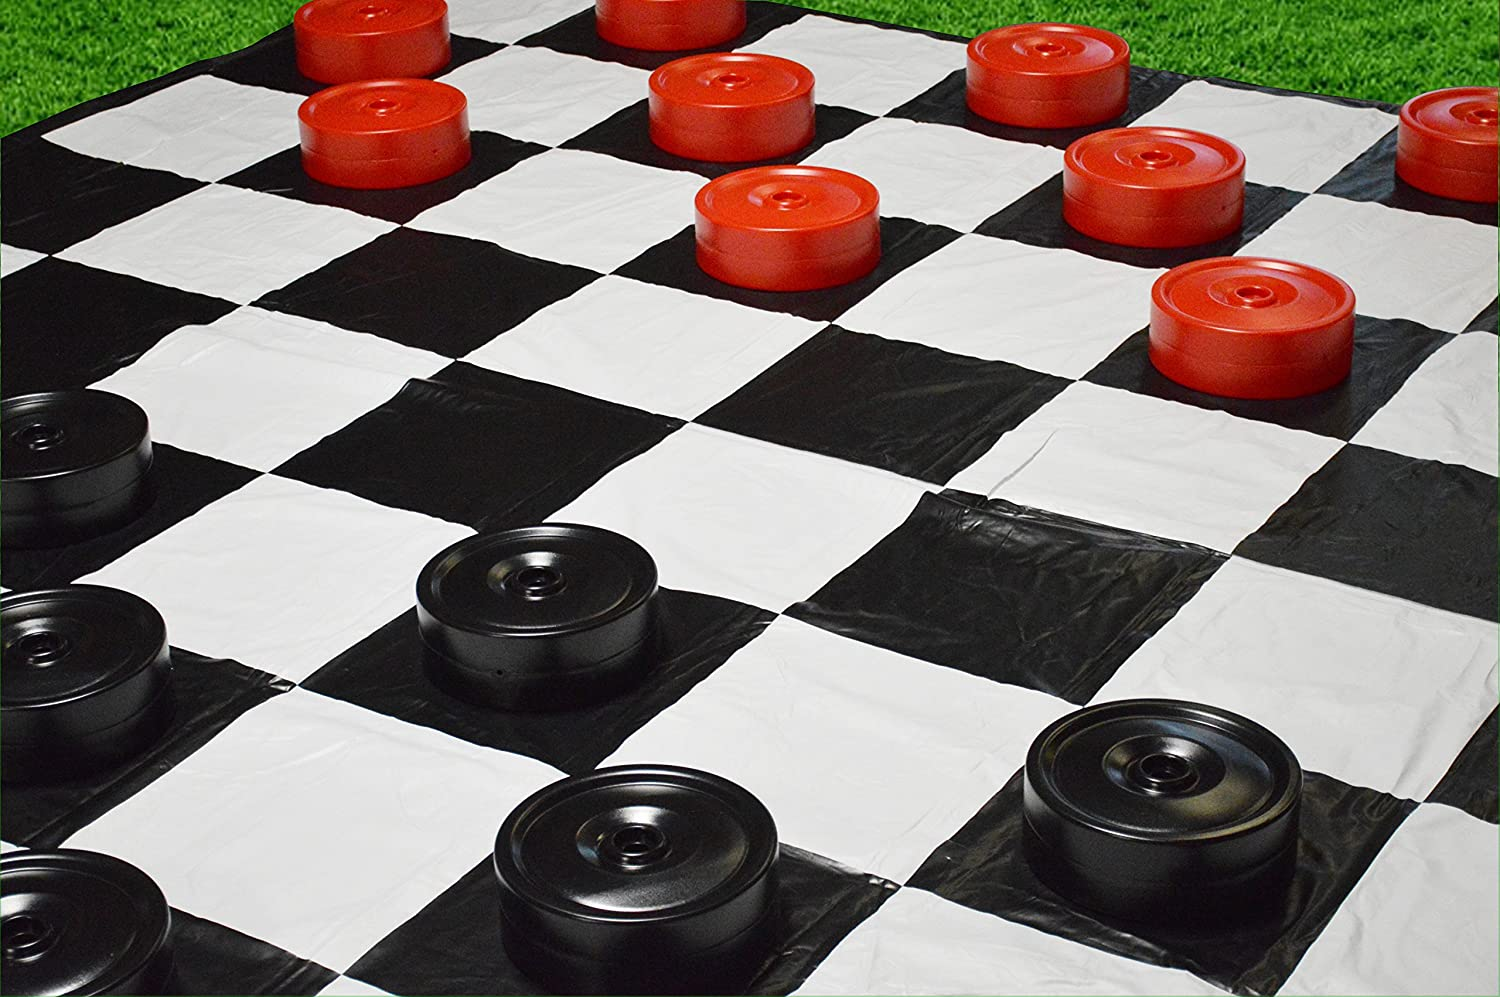 Red and Black 10x10 Mat Garden Games Giant Checkers